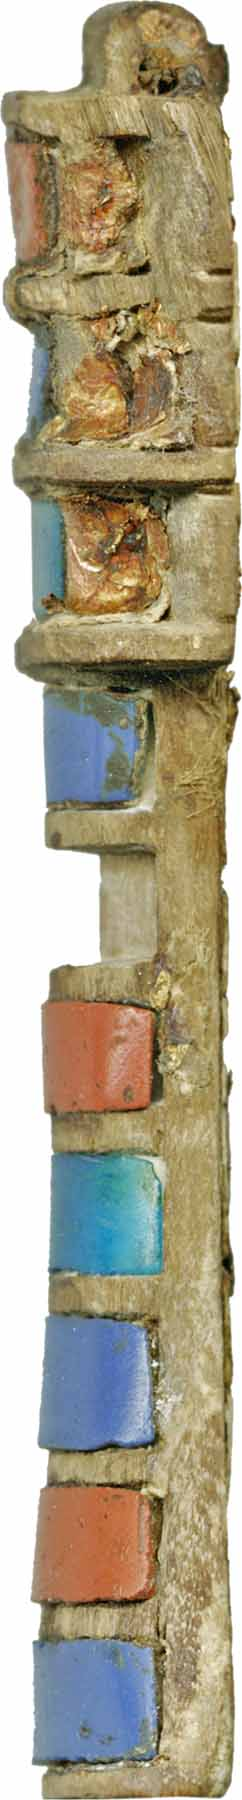 Dyed Egyptian_-_Djed_Pillar_-_Walters_61214_-_Right